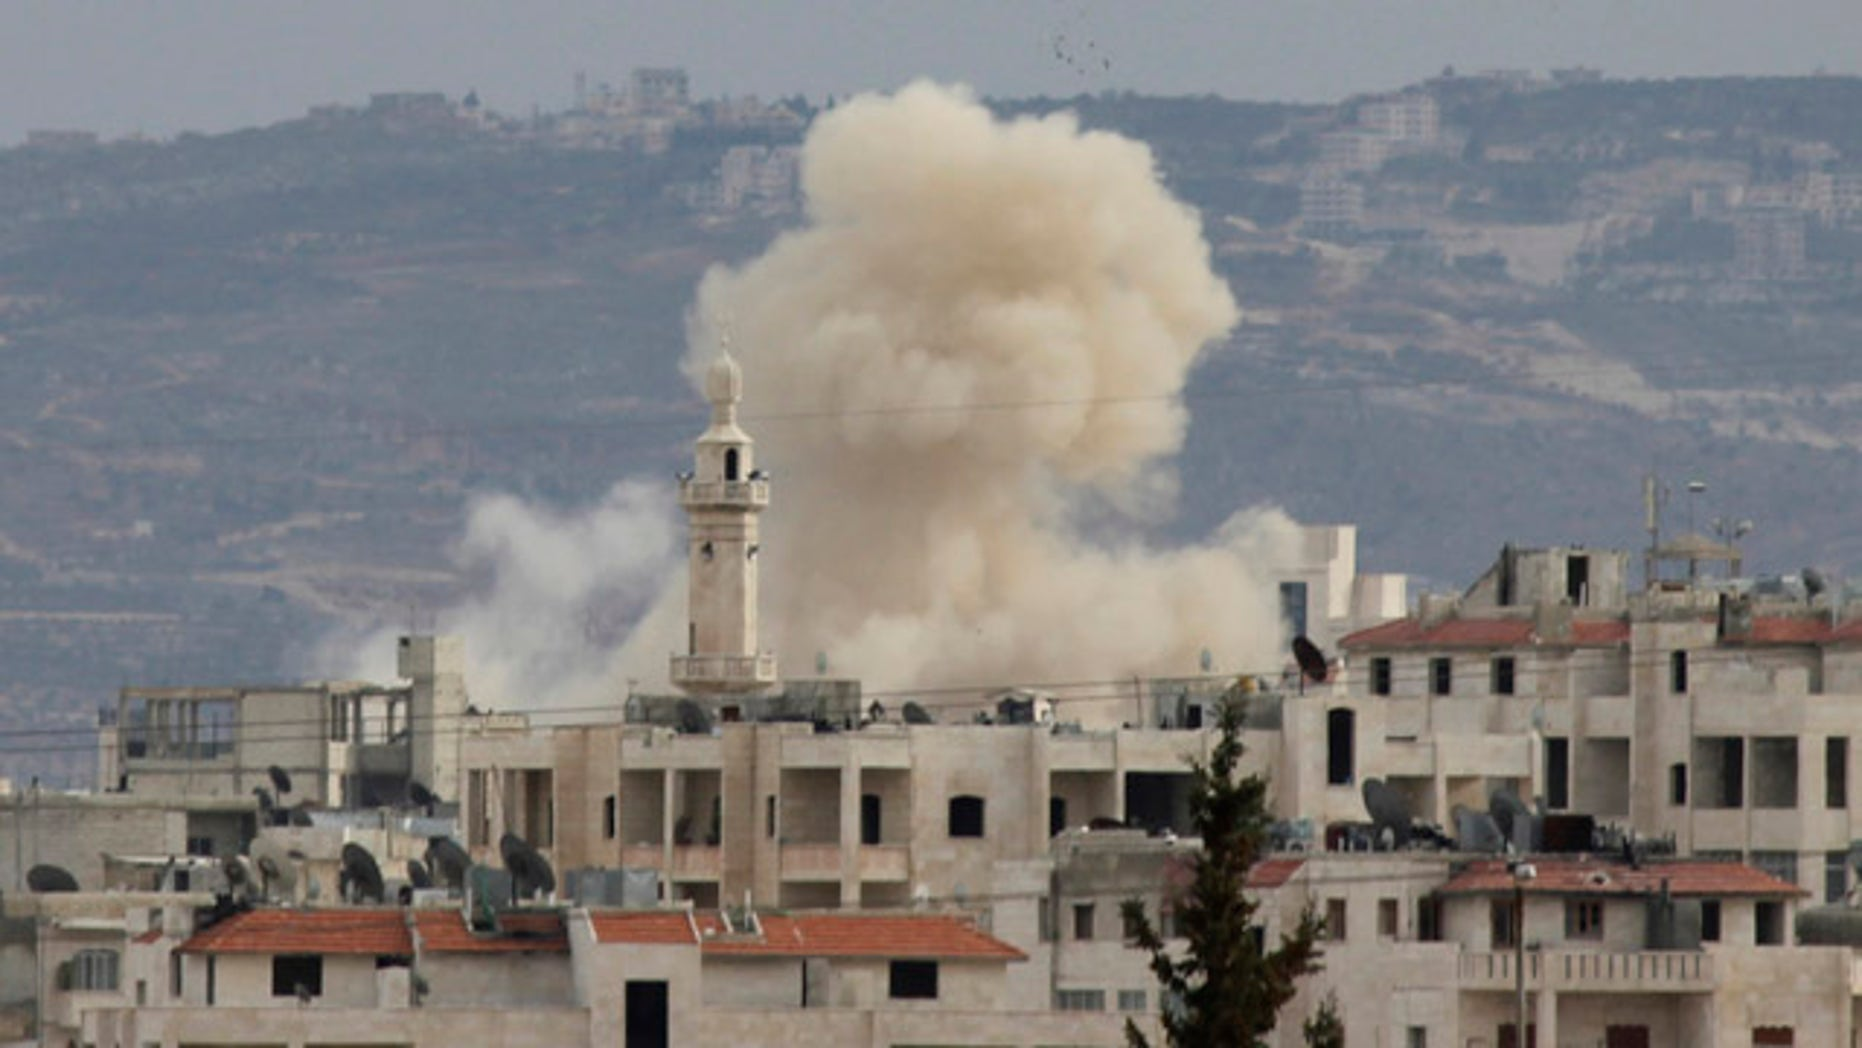 March 11: Smoke rises as Idlib city is shelled by government forces. Activists said at least four people were killed in Idlib on Sunday after troops and tanks moved in a day earlier.